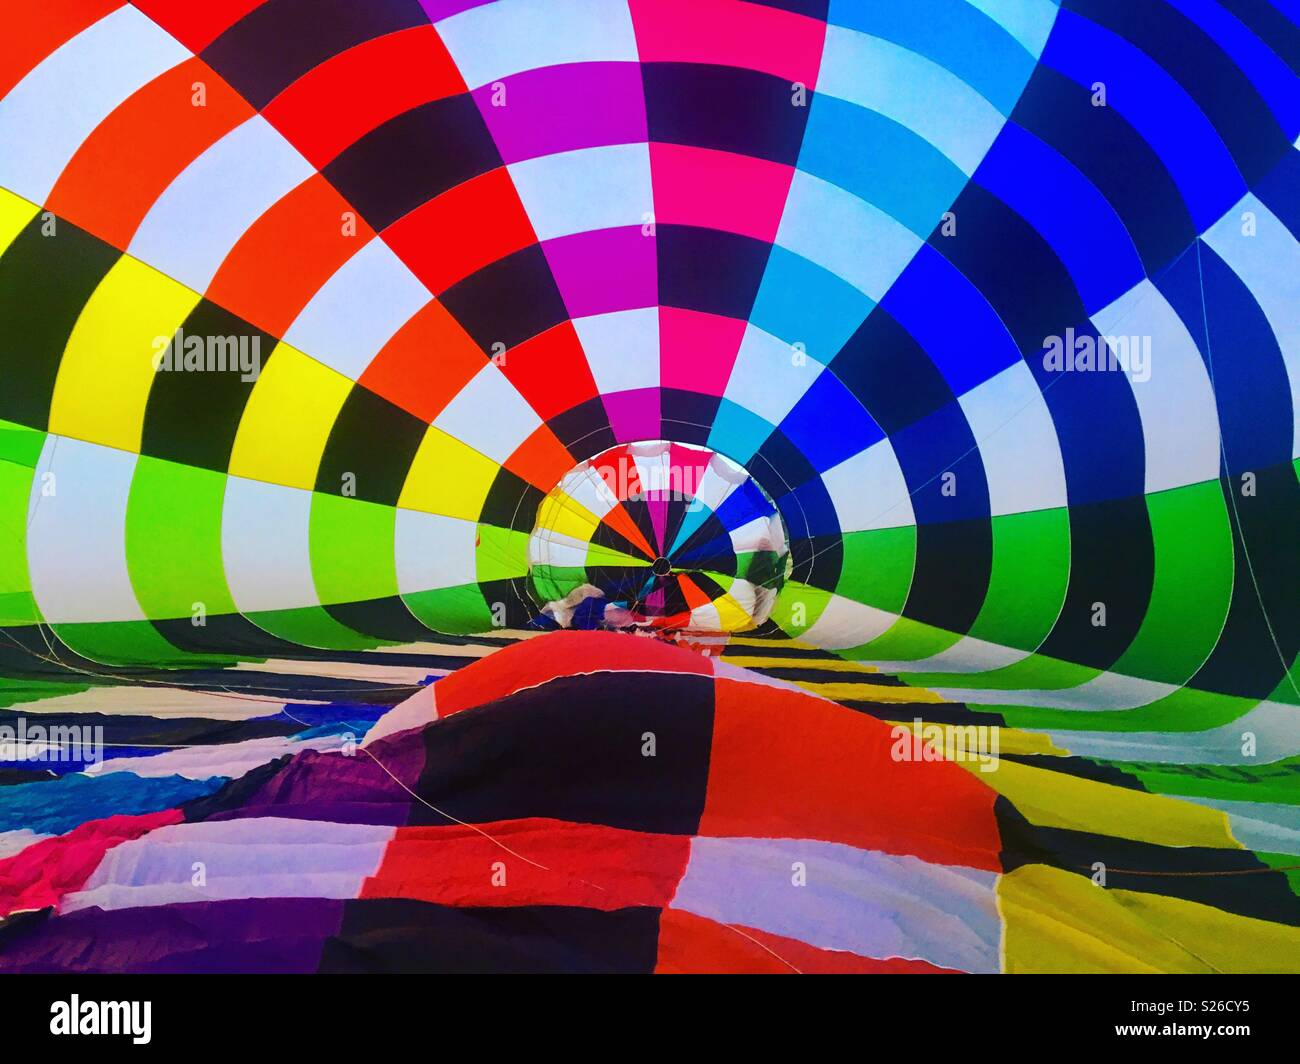 Hot Air Balloon inflation - Stock Image